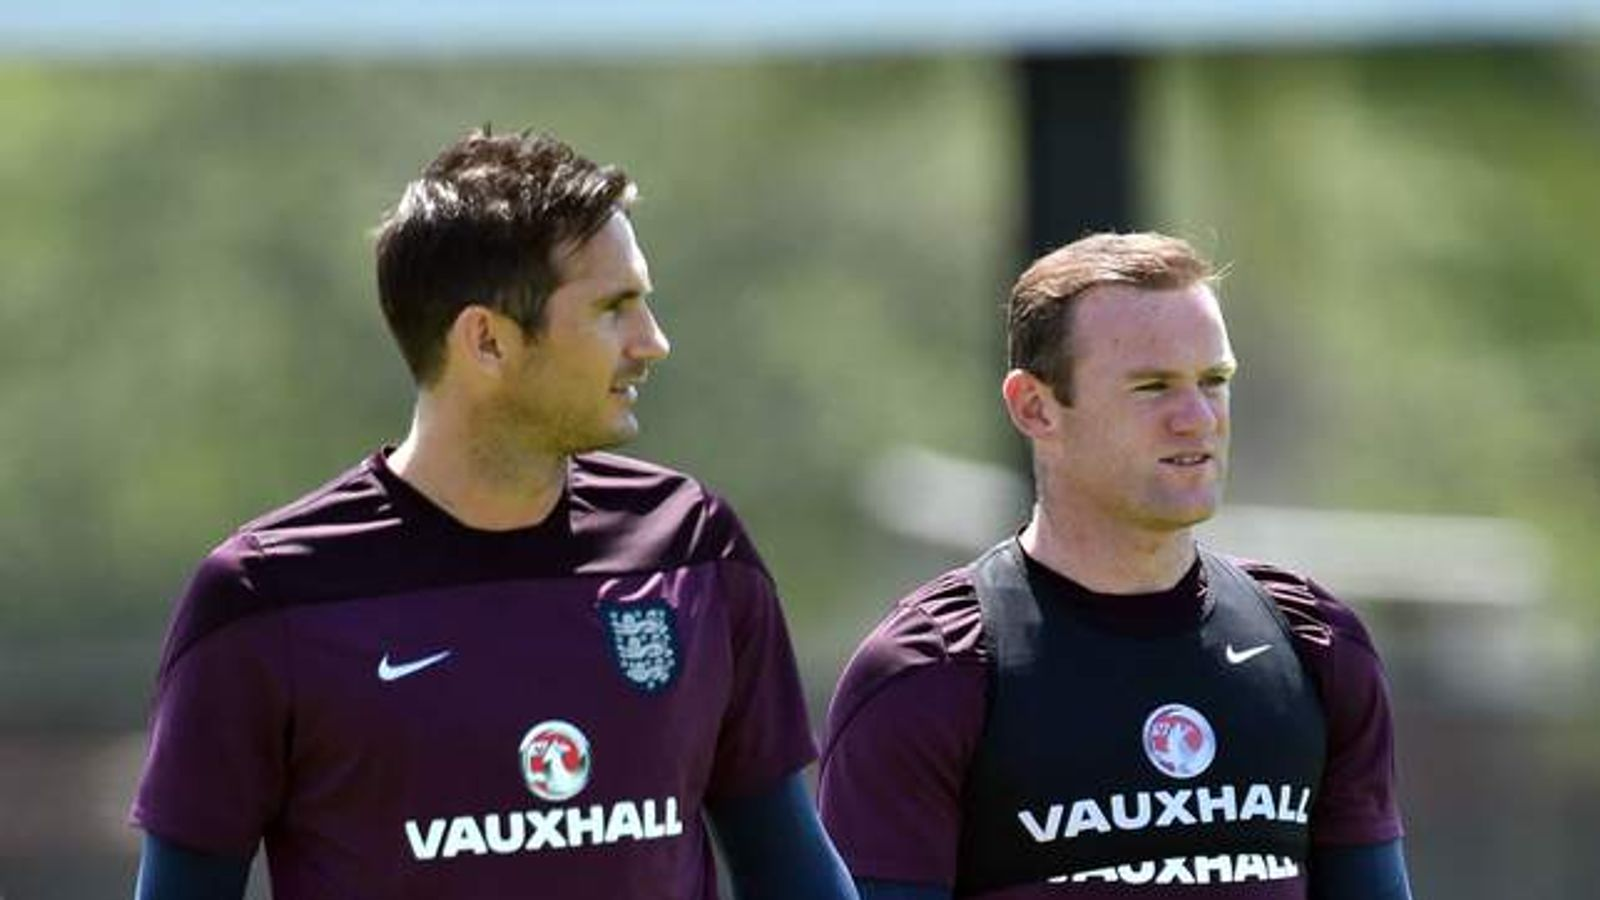 Frank Lampard and Wayne Rooney